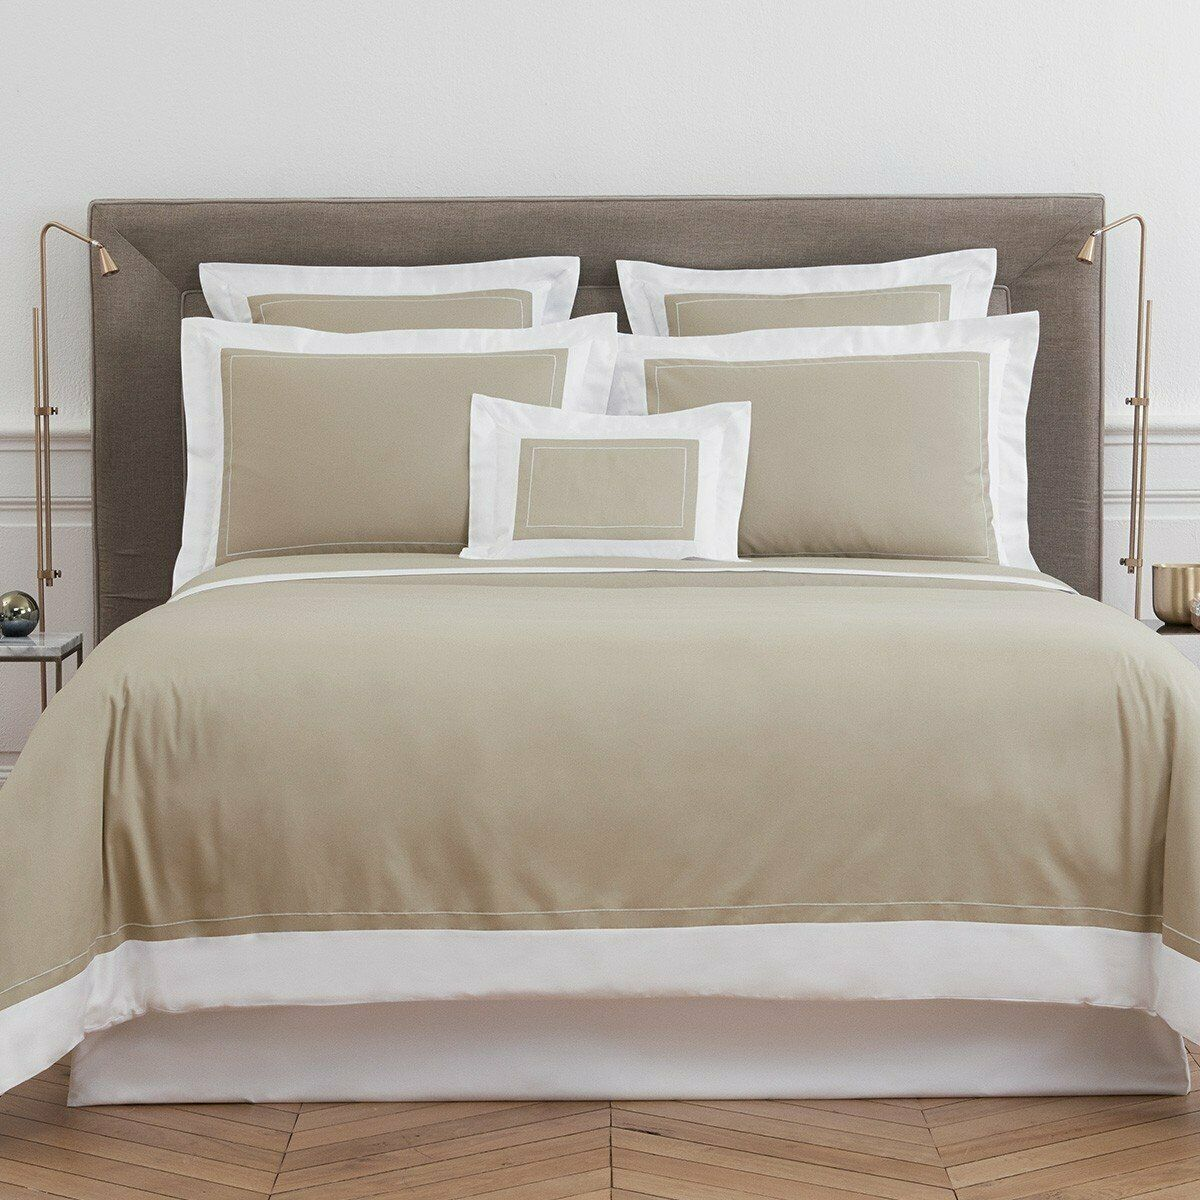 FRANCE YVES DELORME UCETIA SOLID Farbe COTTON SATEEN PILLOWCASE